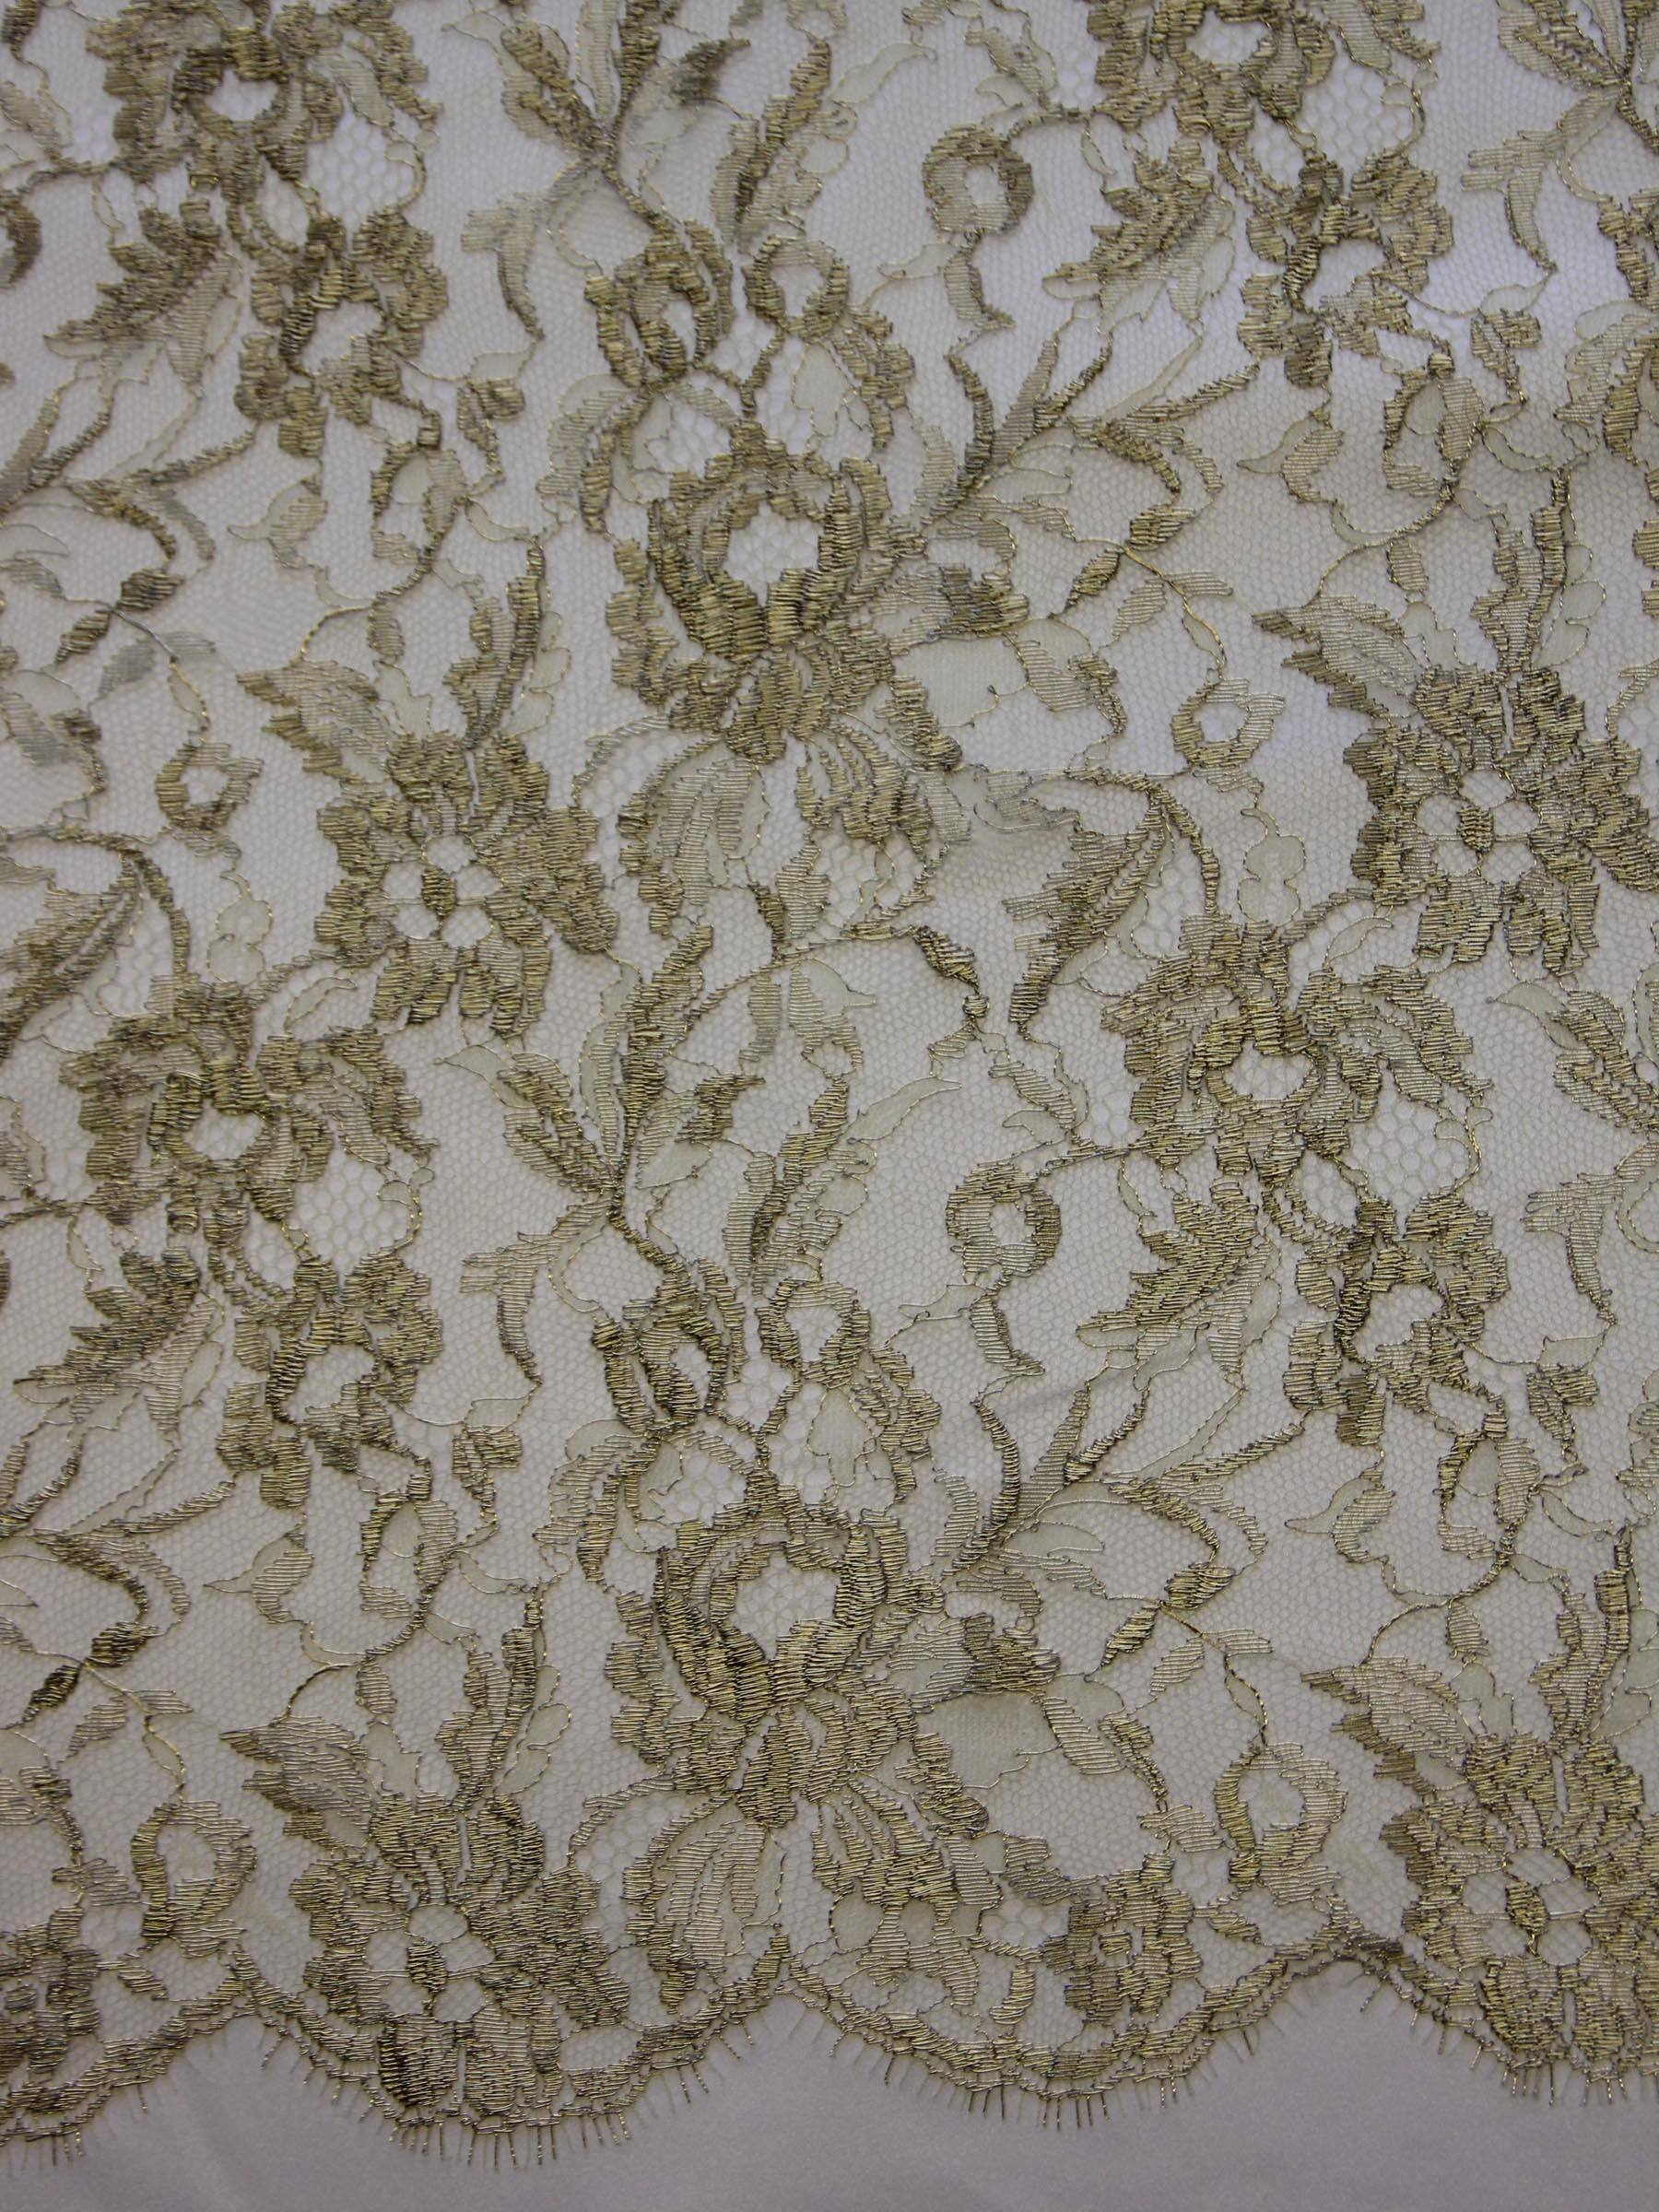 Gold Chantilly Lace - Orla